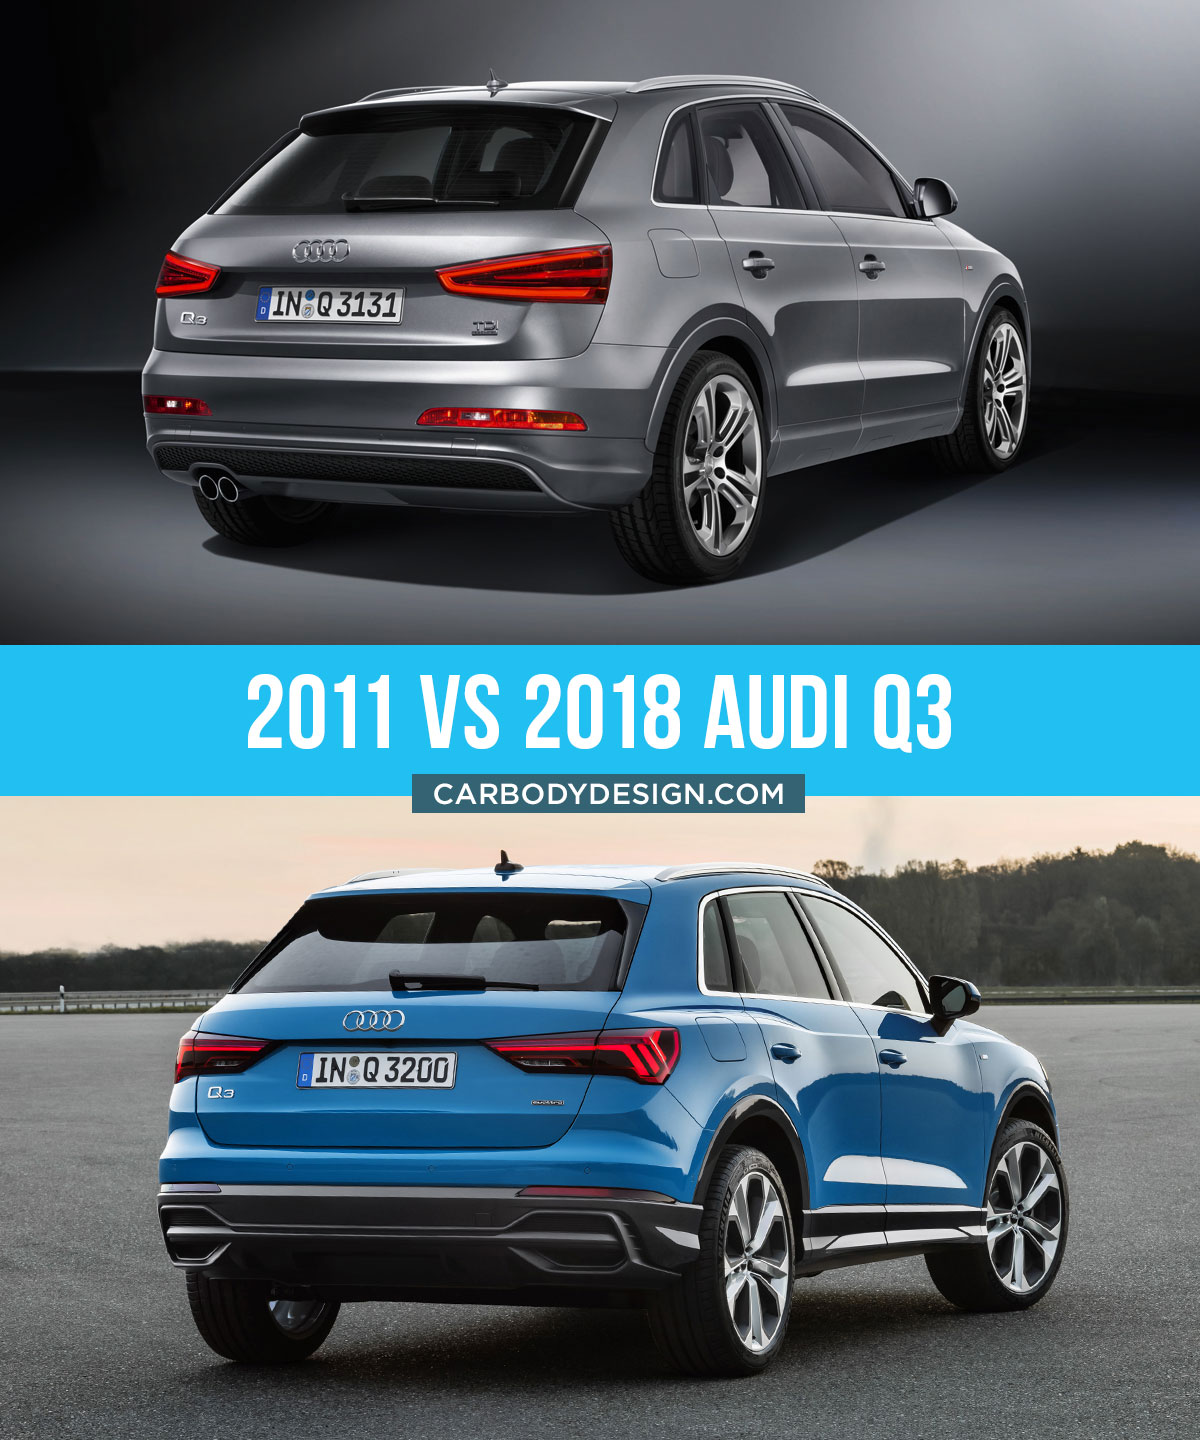 2011 vs 2018 Audi Q3 Design Comparison